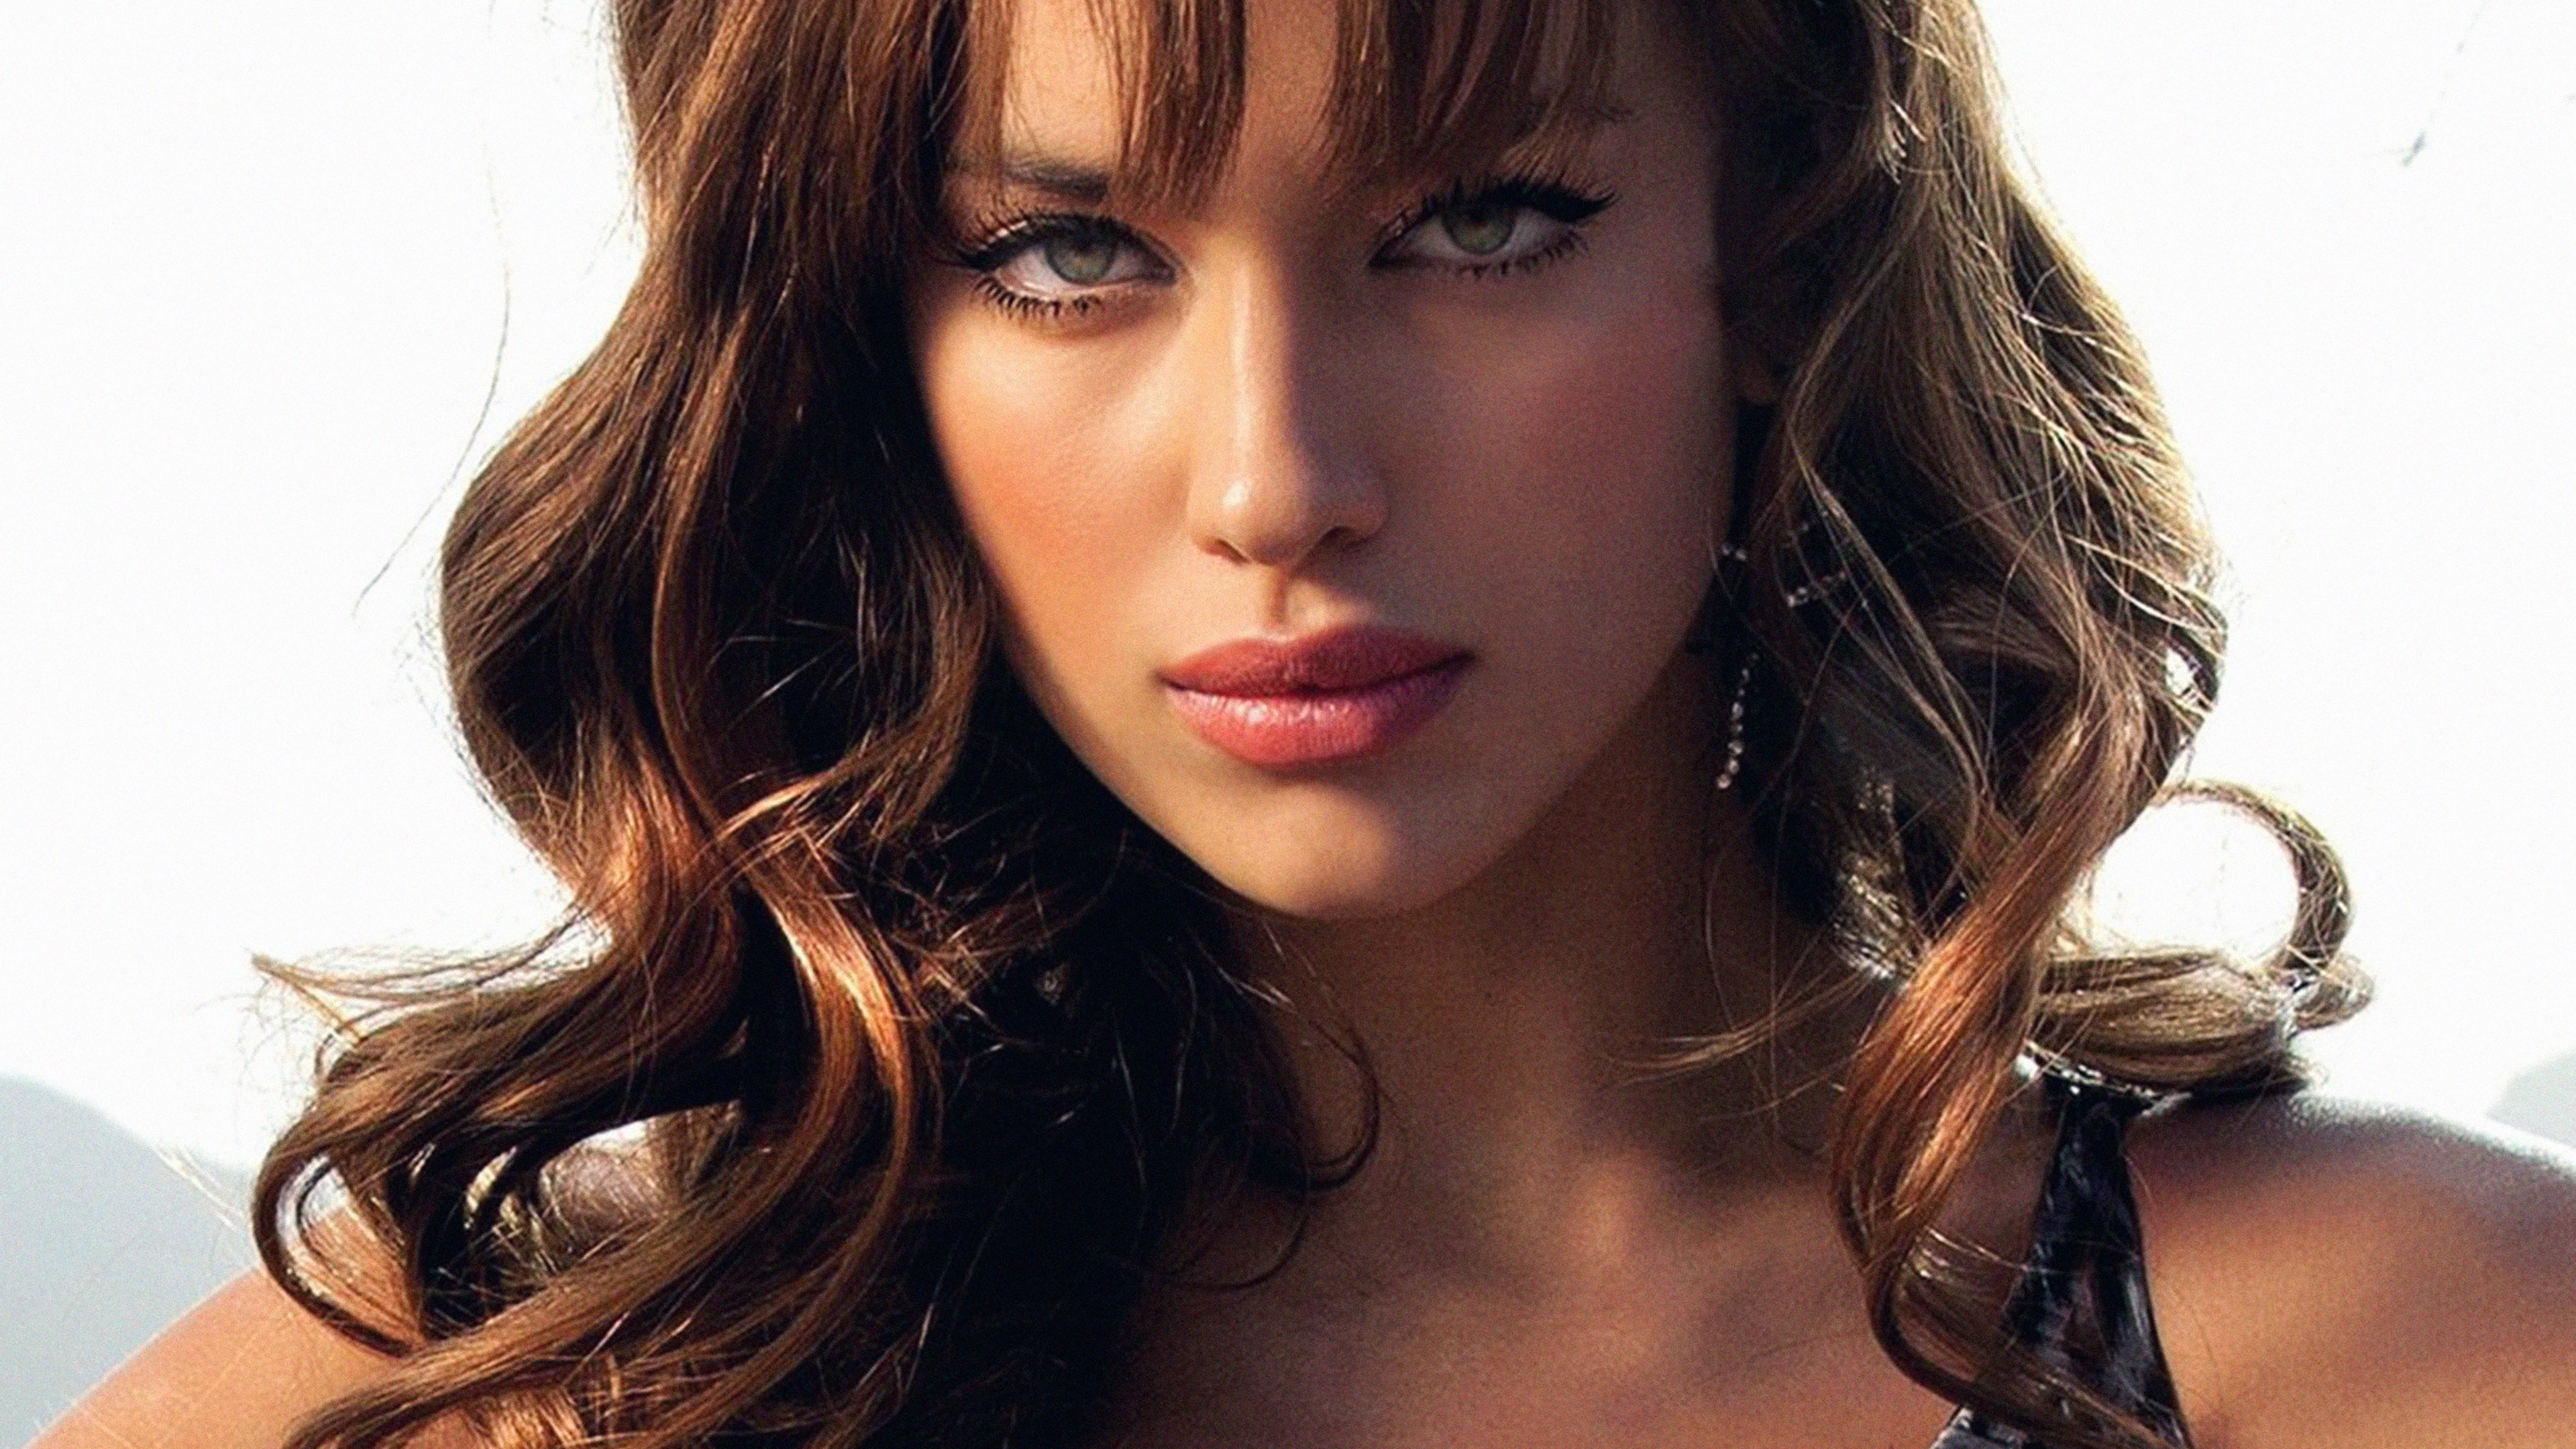 Cute Girl Face Desktop Wallpaper Ha86 Wallpaper Irina Shayk Girl Face Sexy Papers Co